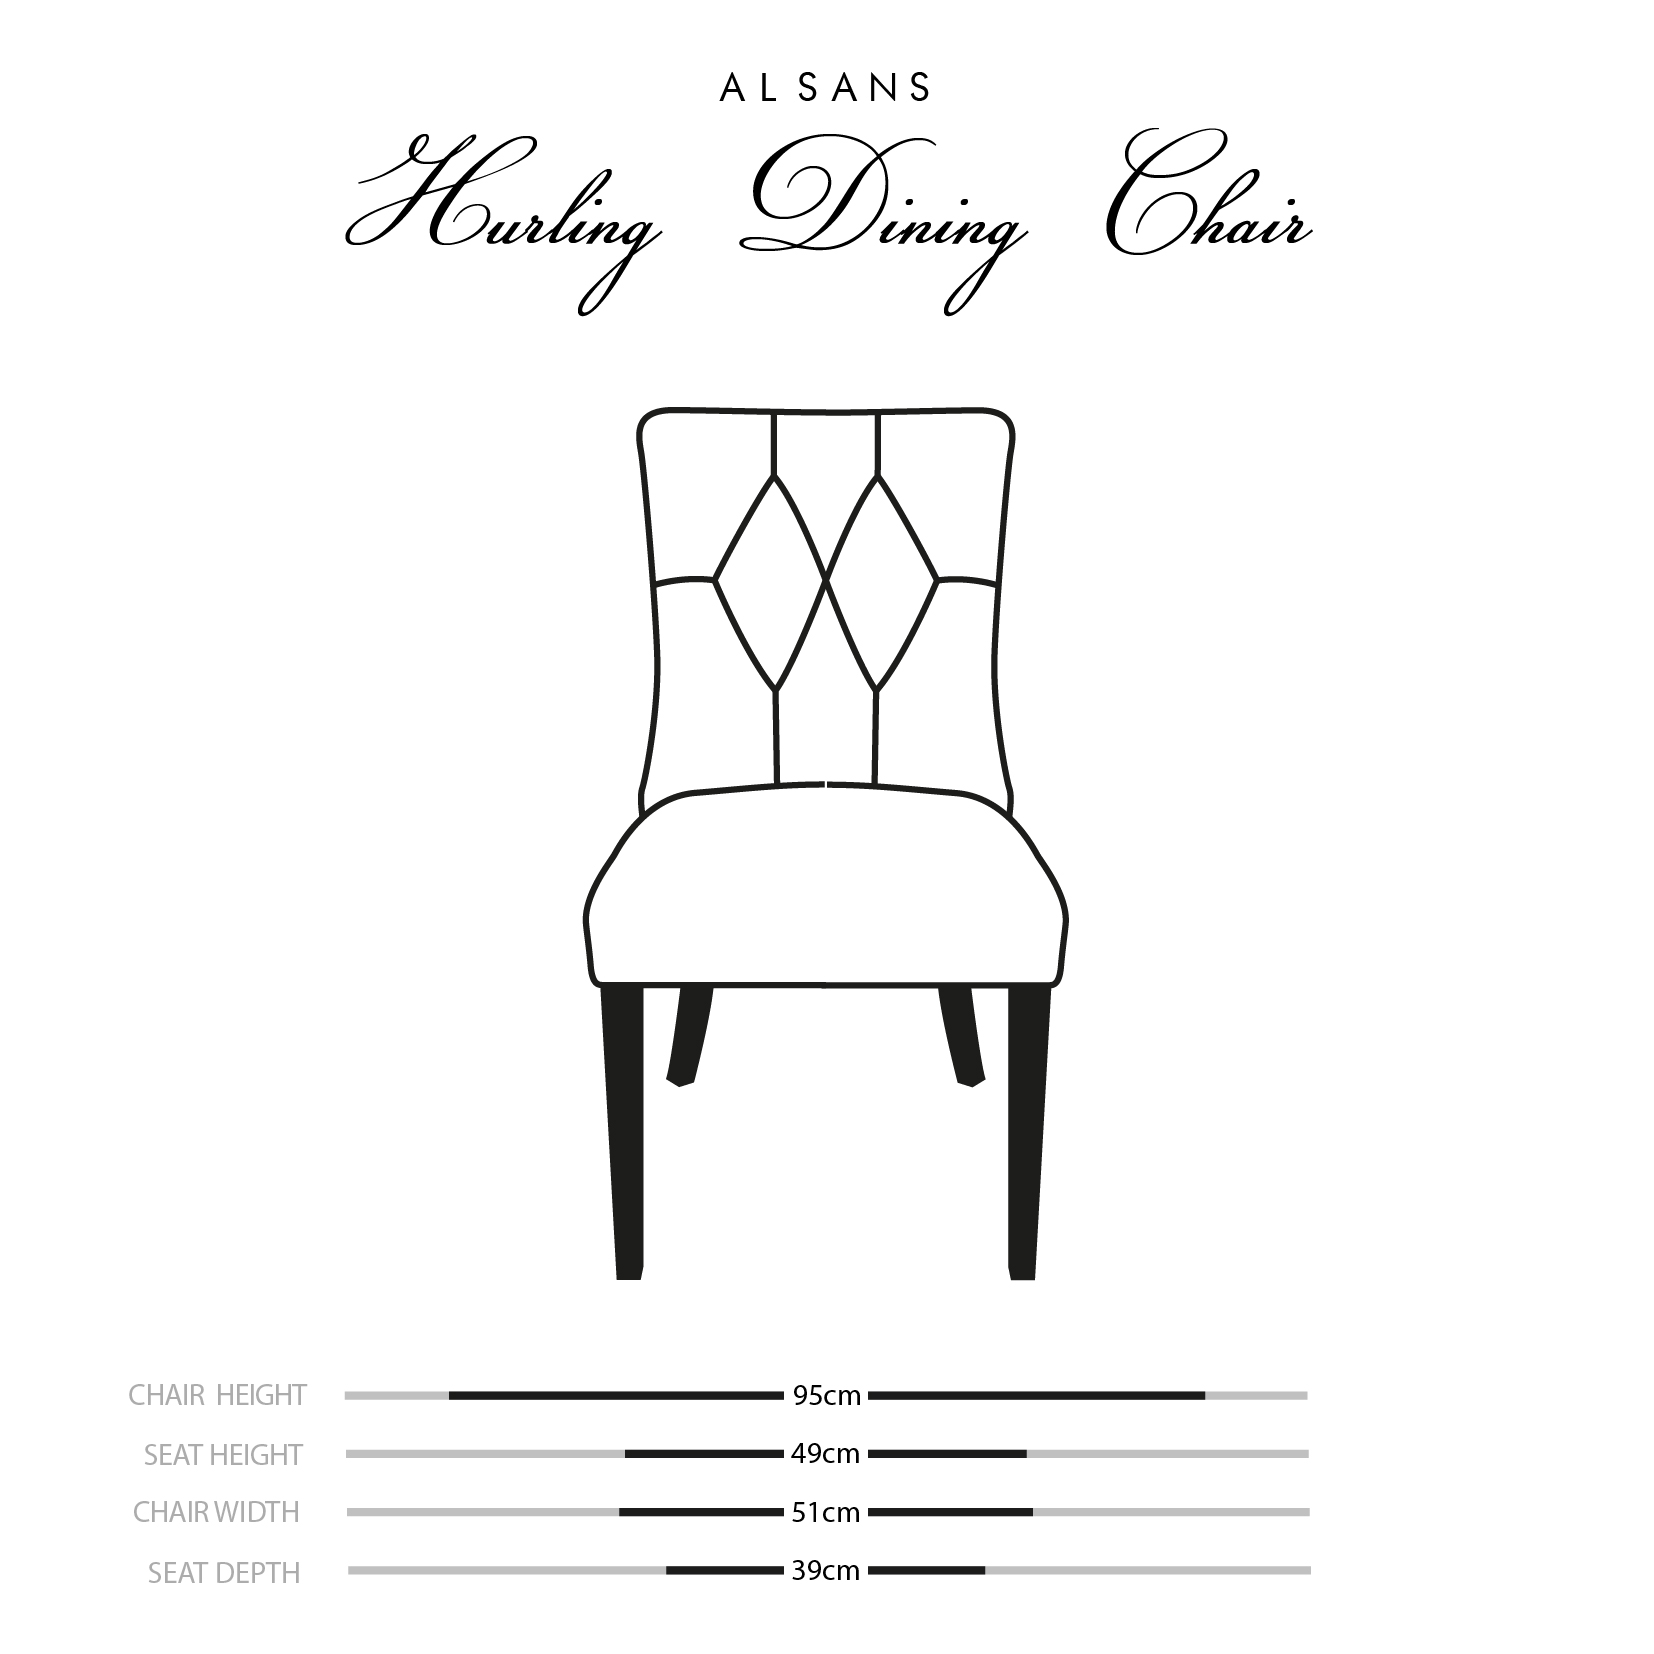 Hurling Dining Chair Dimensions